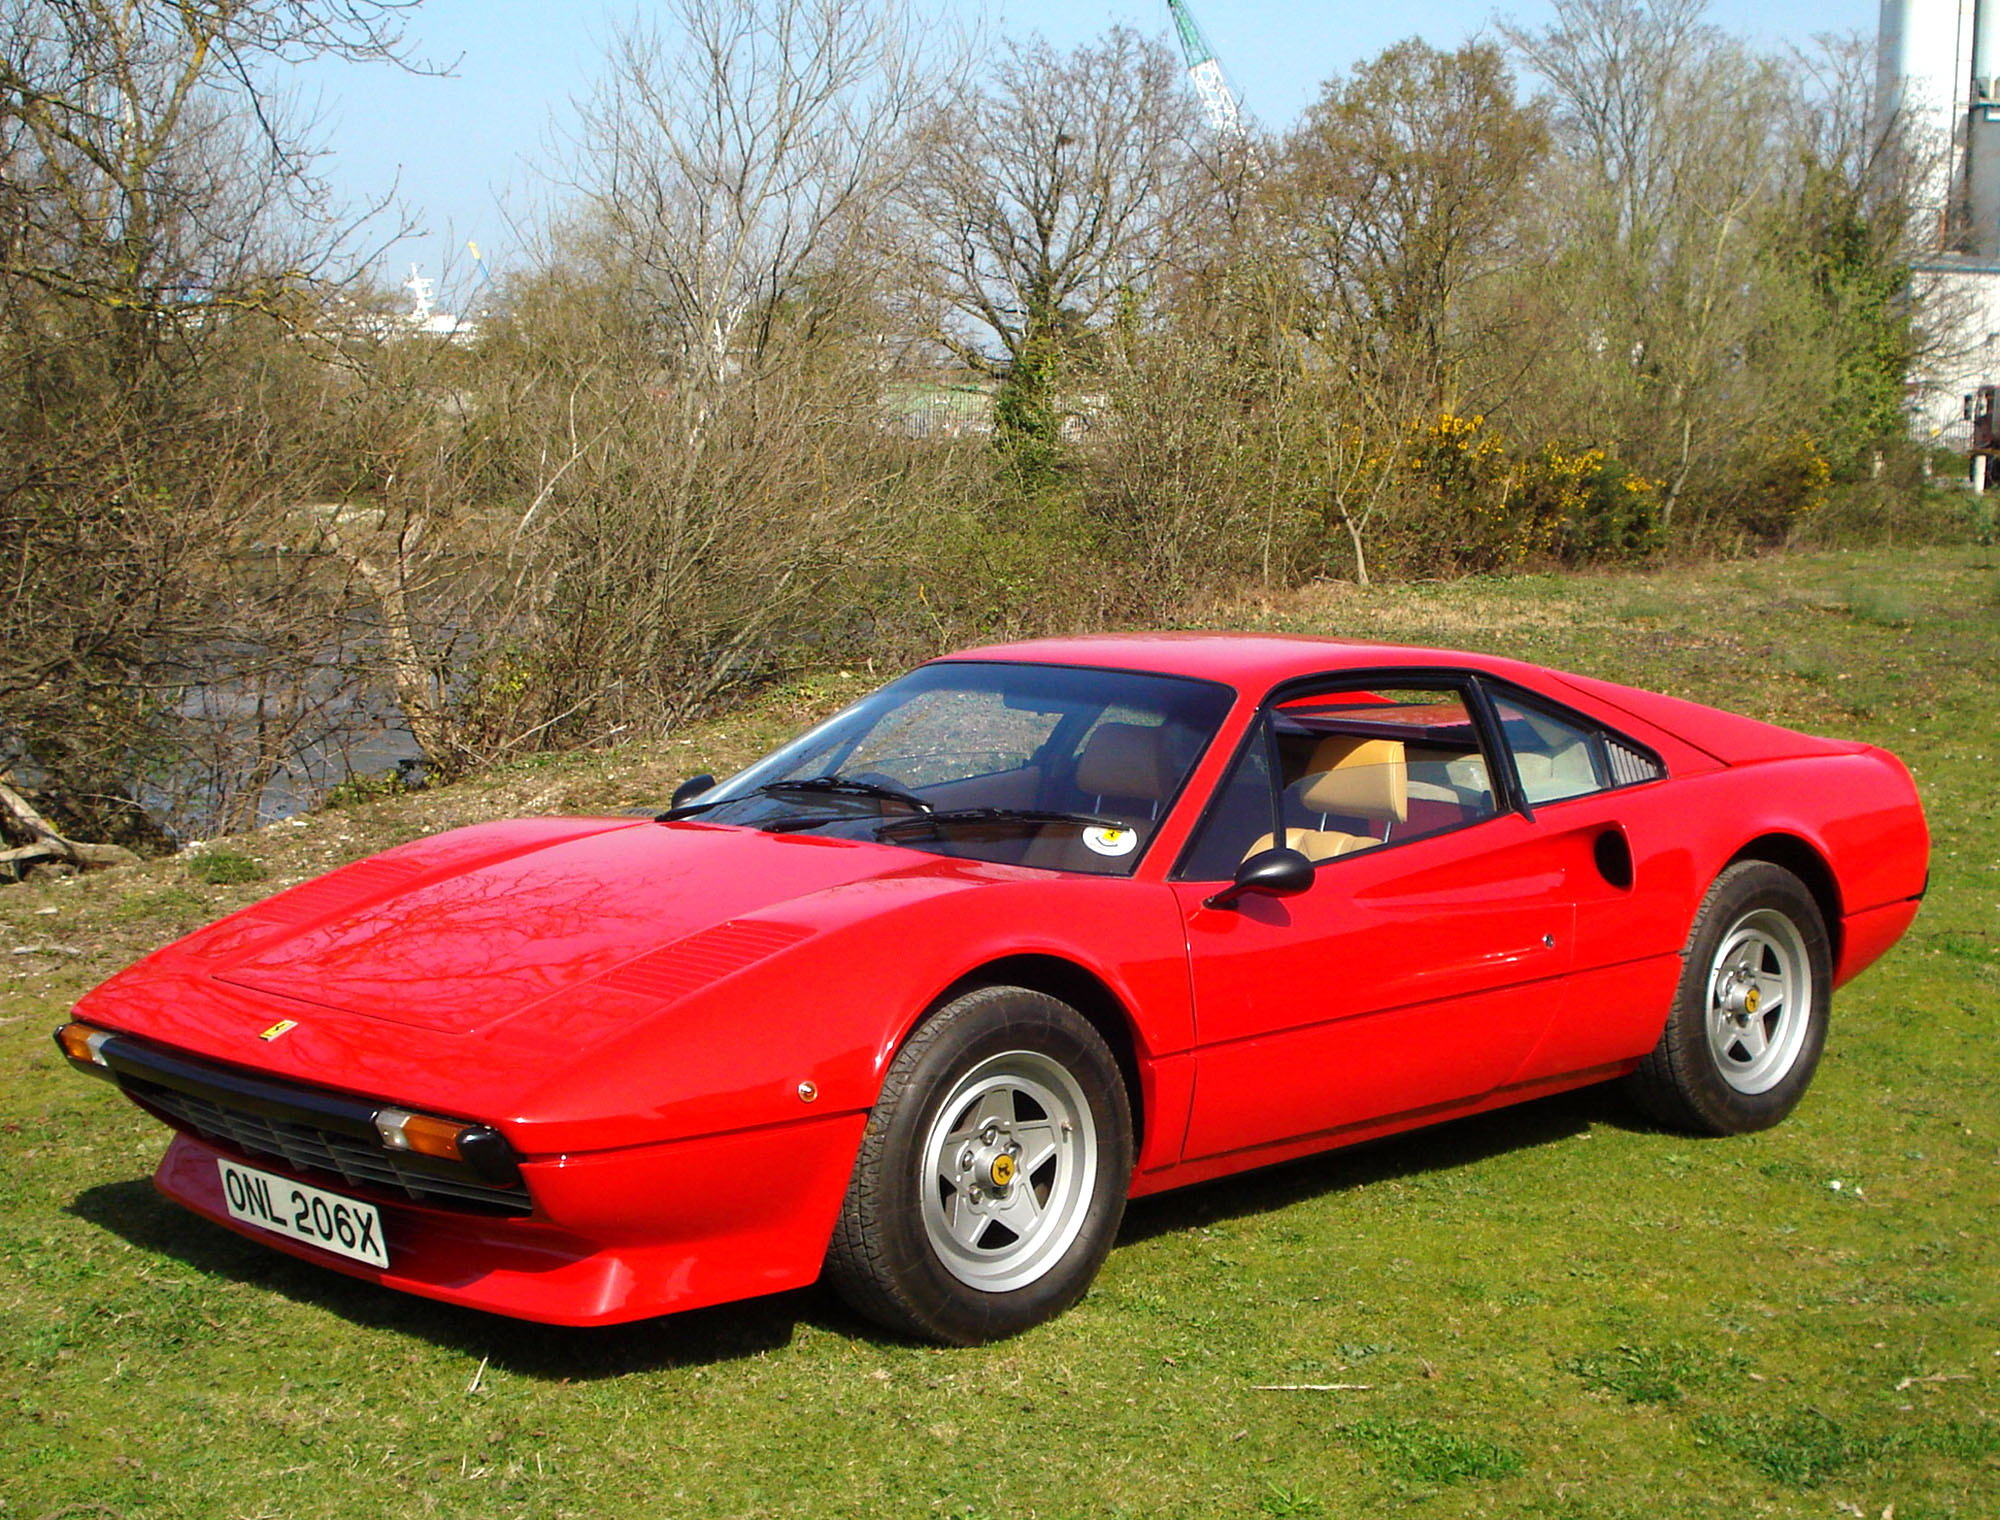 red gts dyler coupe ferrari classic cars sale for